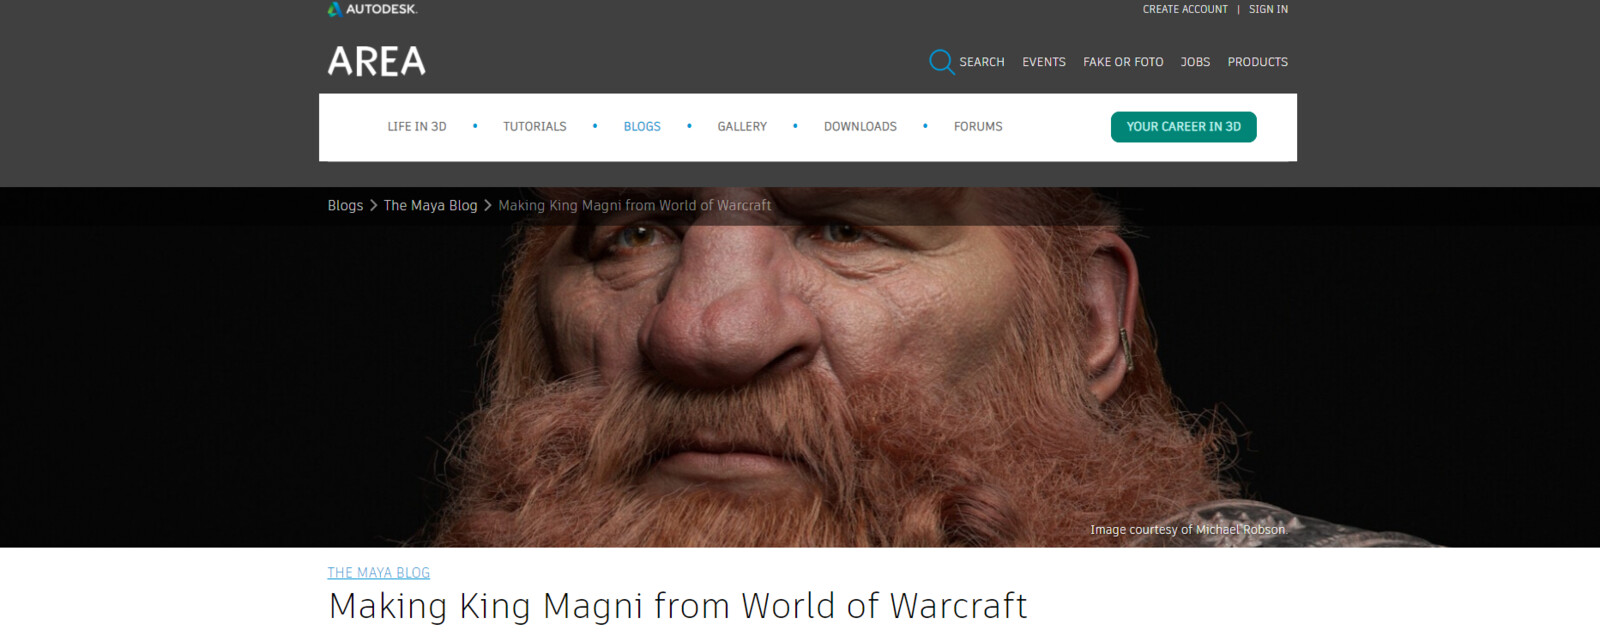 BREAKDOWN:  https://area.autodesk.com/blogs/the-maya-blog/making-king-magni-from-world-of-warcraft/